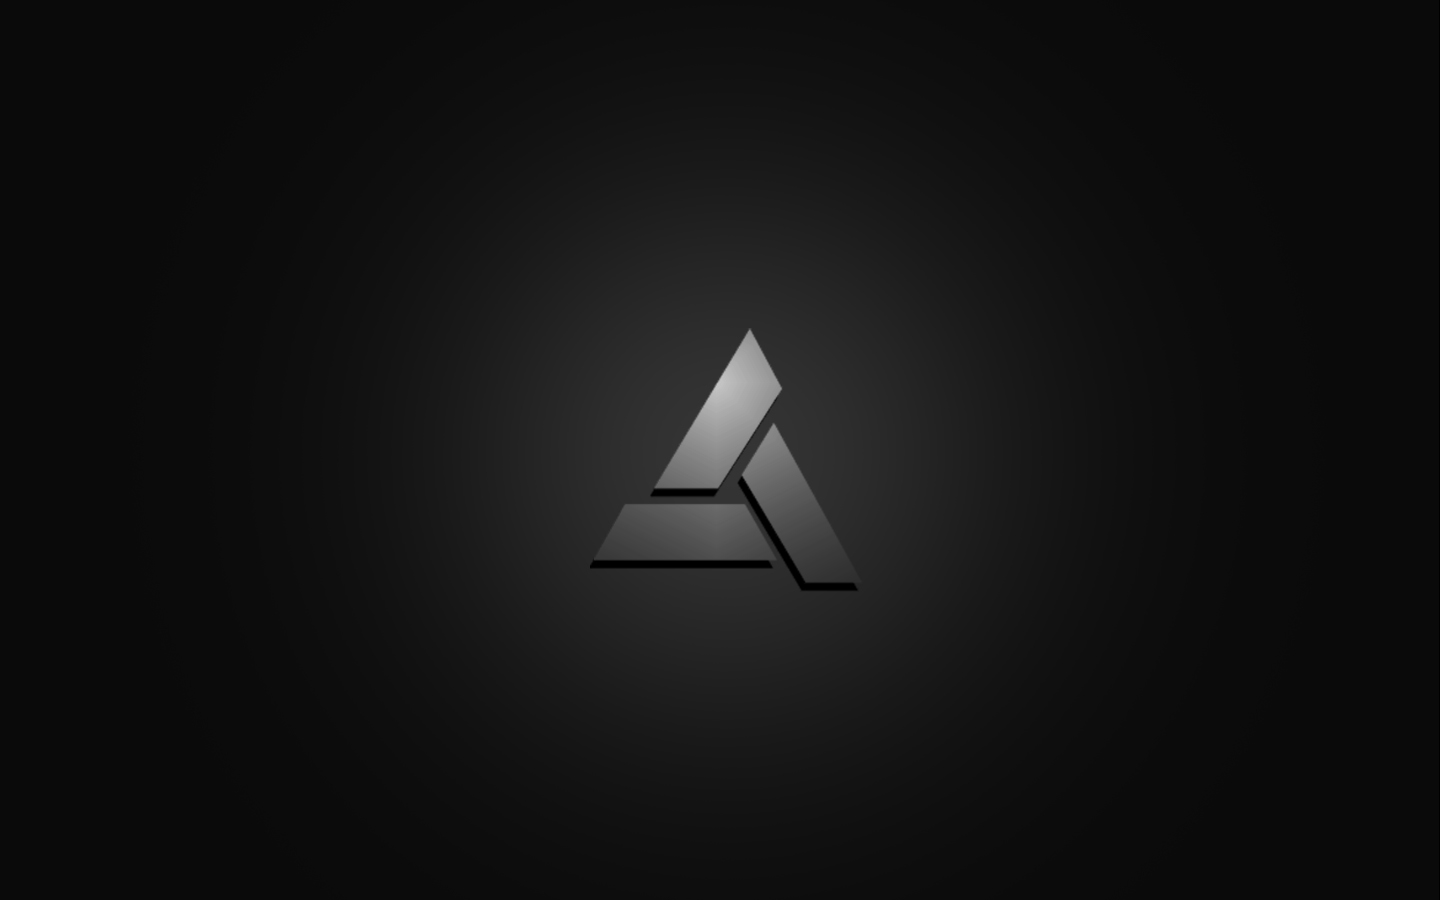 Abstergo Industries WP by humakabula1 on DeviantArt